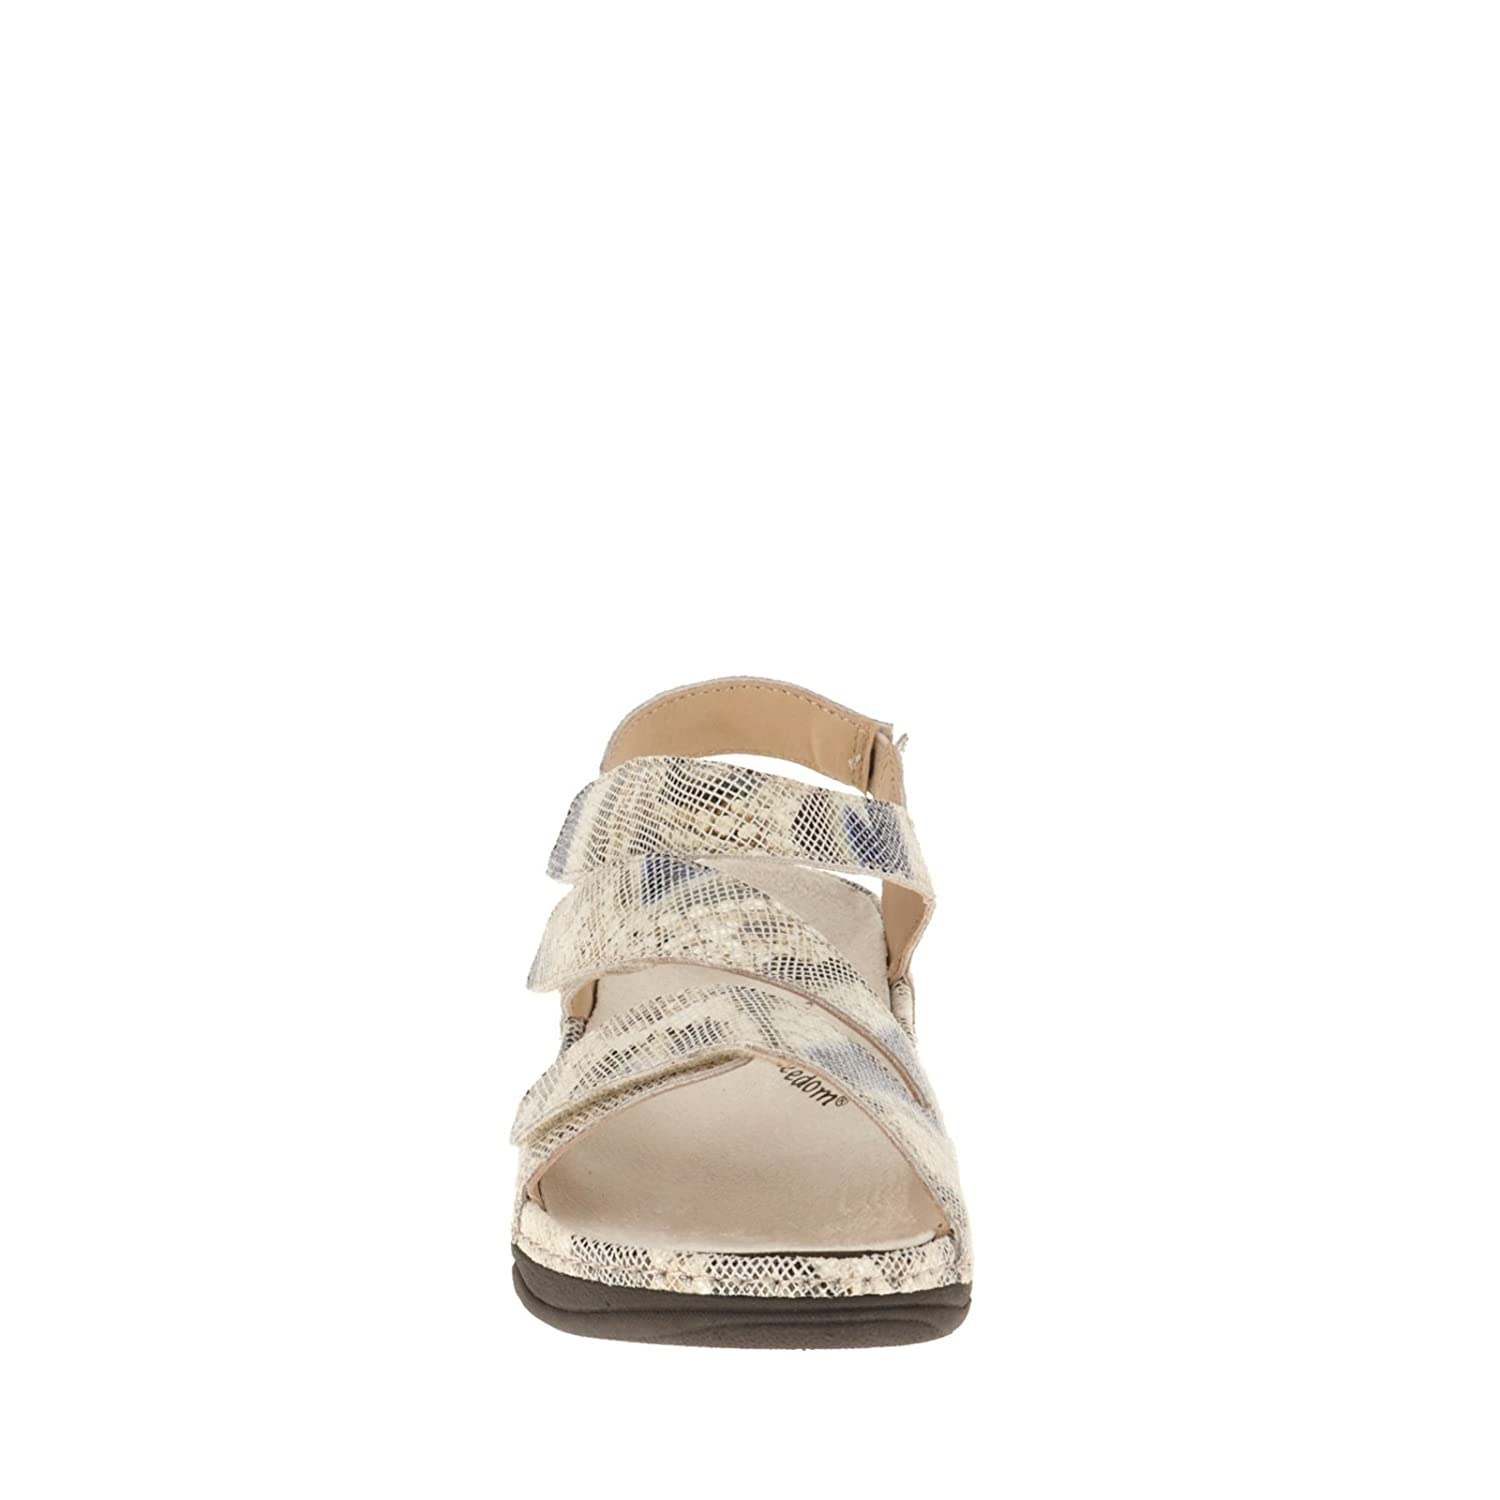 Drew Angela(Women's) -Beige Multi Print Geniue Stockist Cheap Price Get Authentic Online Brand New Unisex Outlet Best Store To Get Buy Online With Paypal Eq0NFv